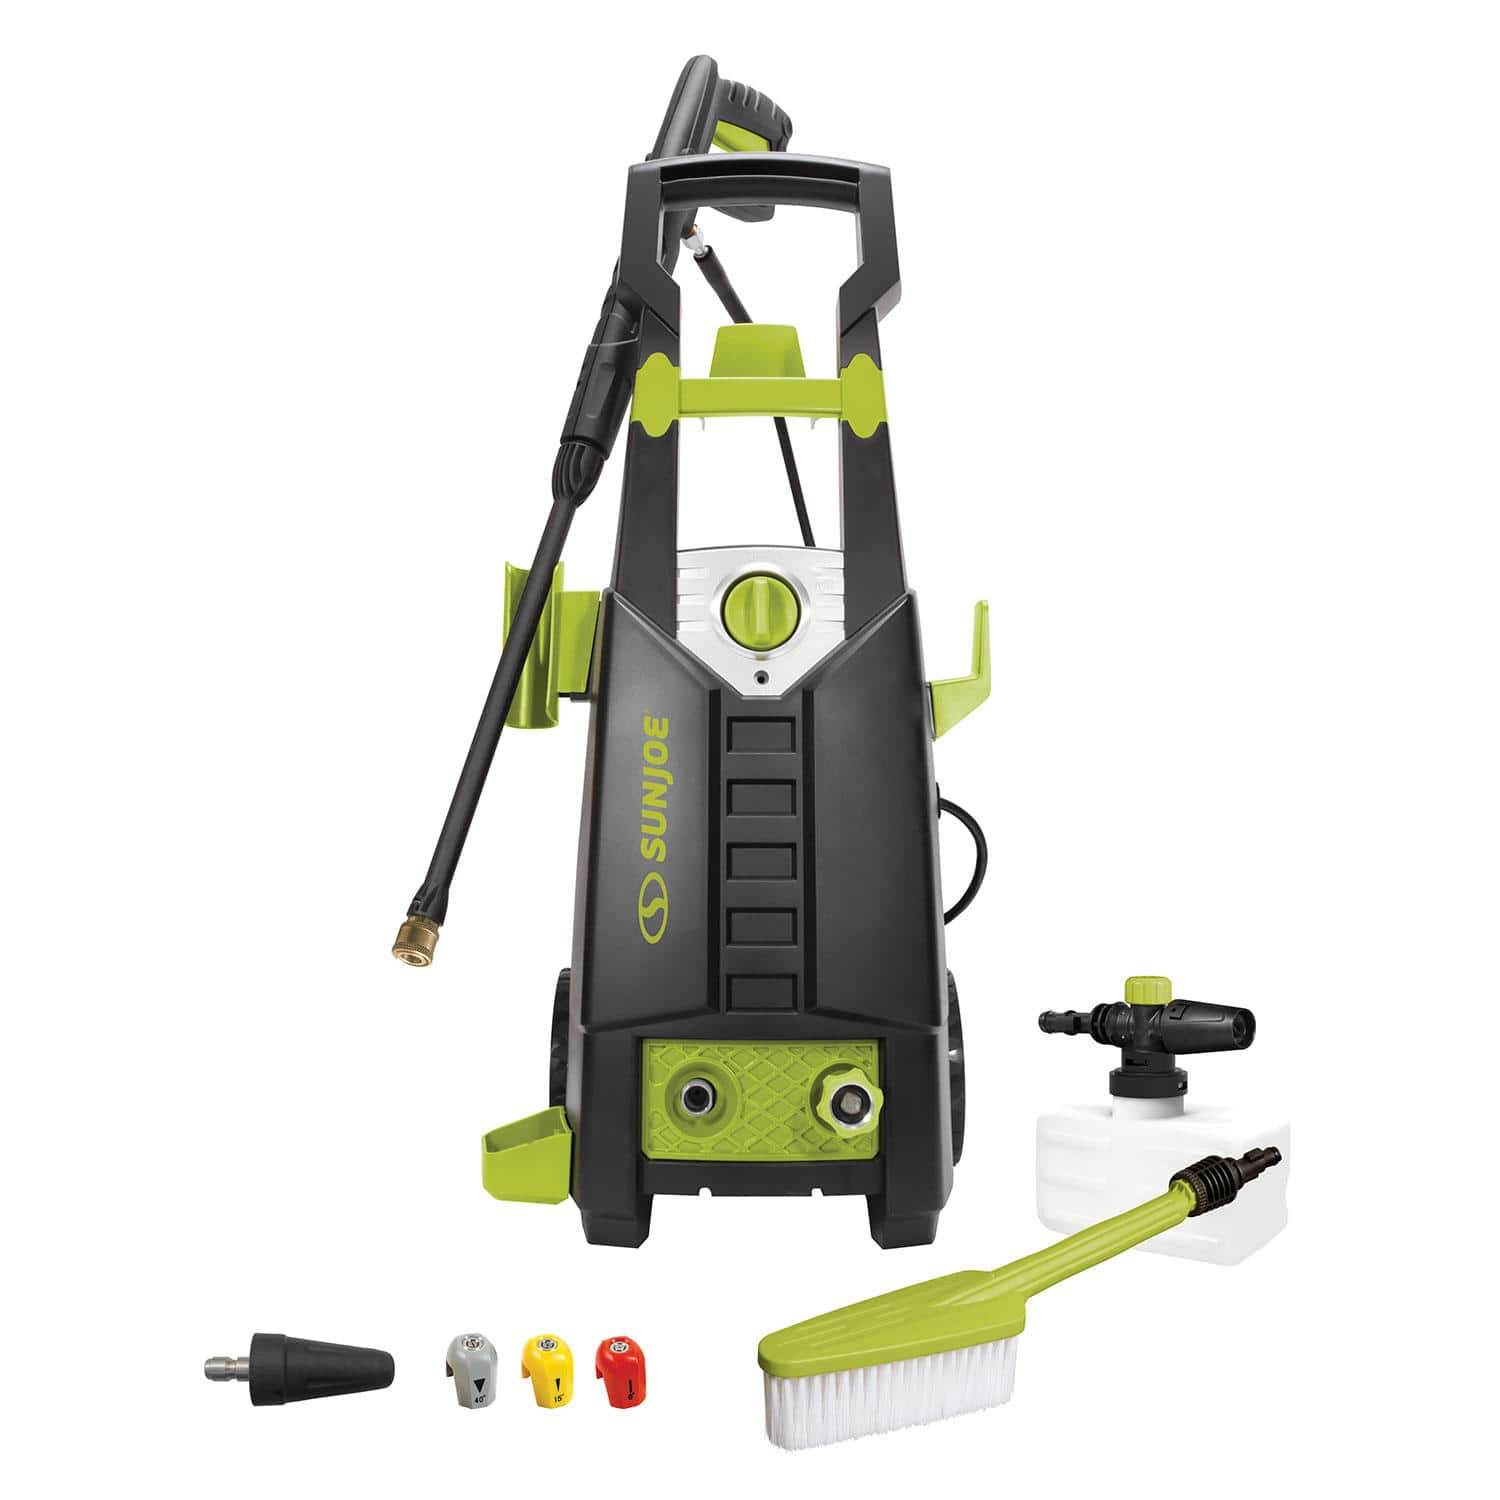 Begins May 8, Sun Joe 2,080 PSI/1.65 GPM Electric Pressure Washer and Accessory Kit, free shipping, $99.98, Sam's Club